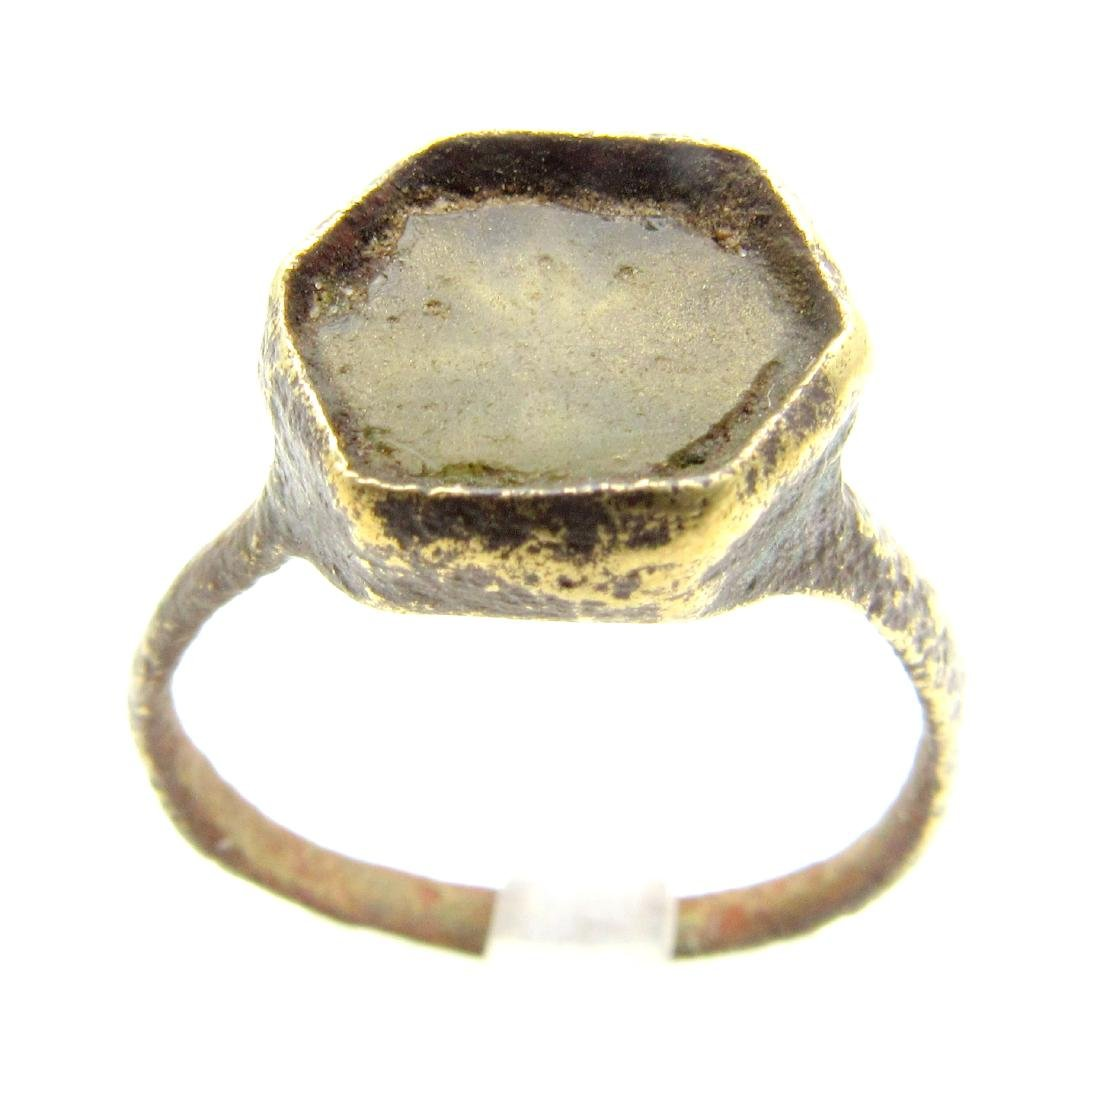 Medieval Crusaders Ring with Glass Over A Star/Cross